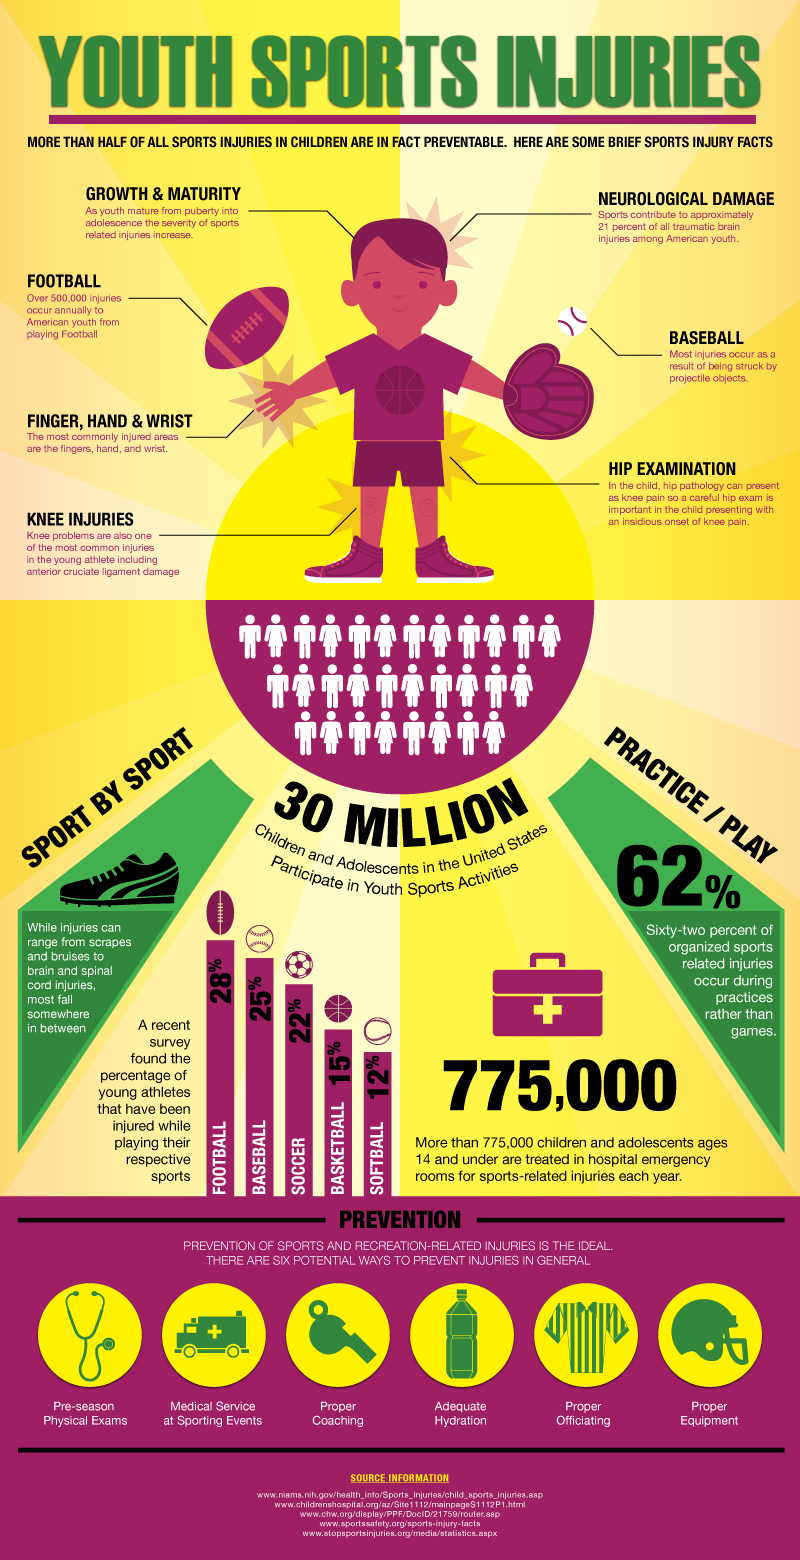 Youth Sports Facts